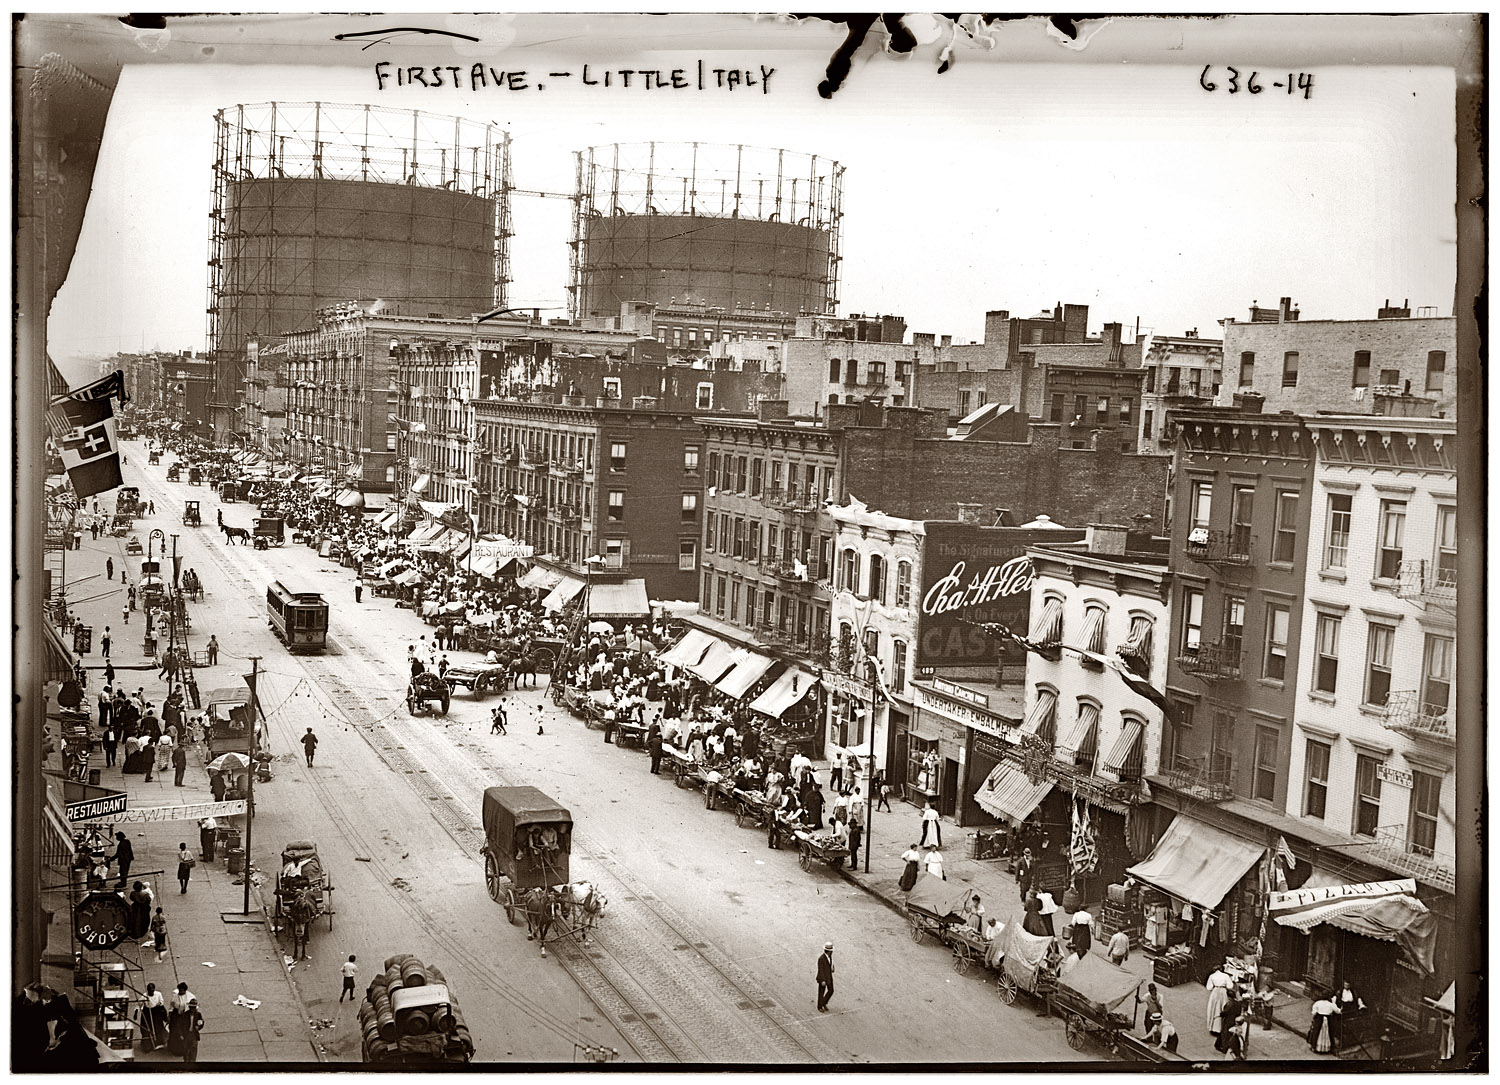 BUY PRINT New York's First Avenue at East 29th Street during the annual  Little Italy festa circa 1908. 5x7 glass negative, George Grantham Bain  Collection.